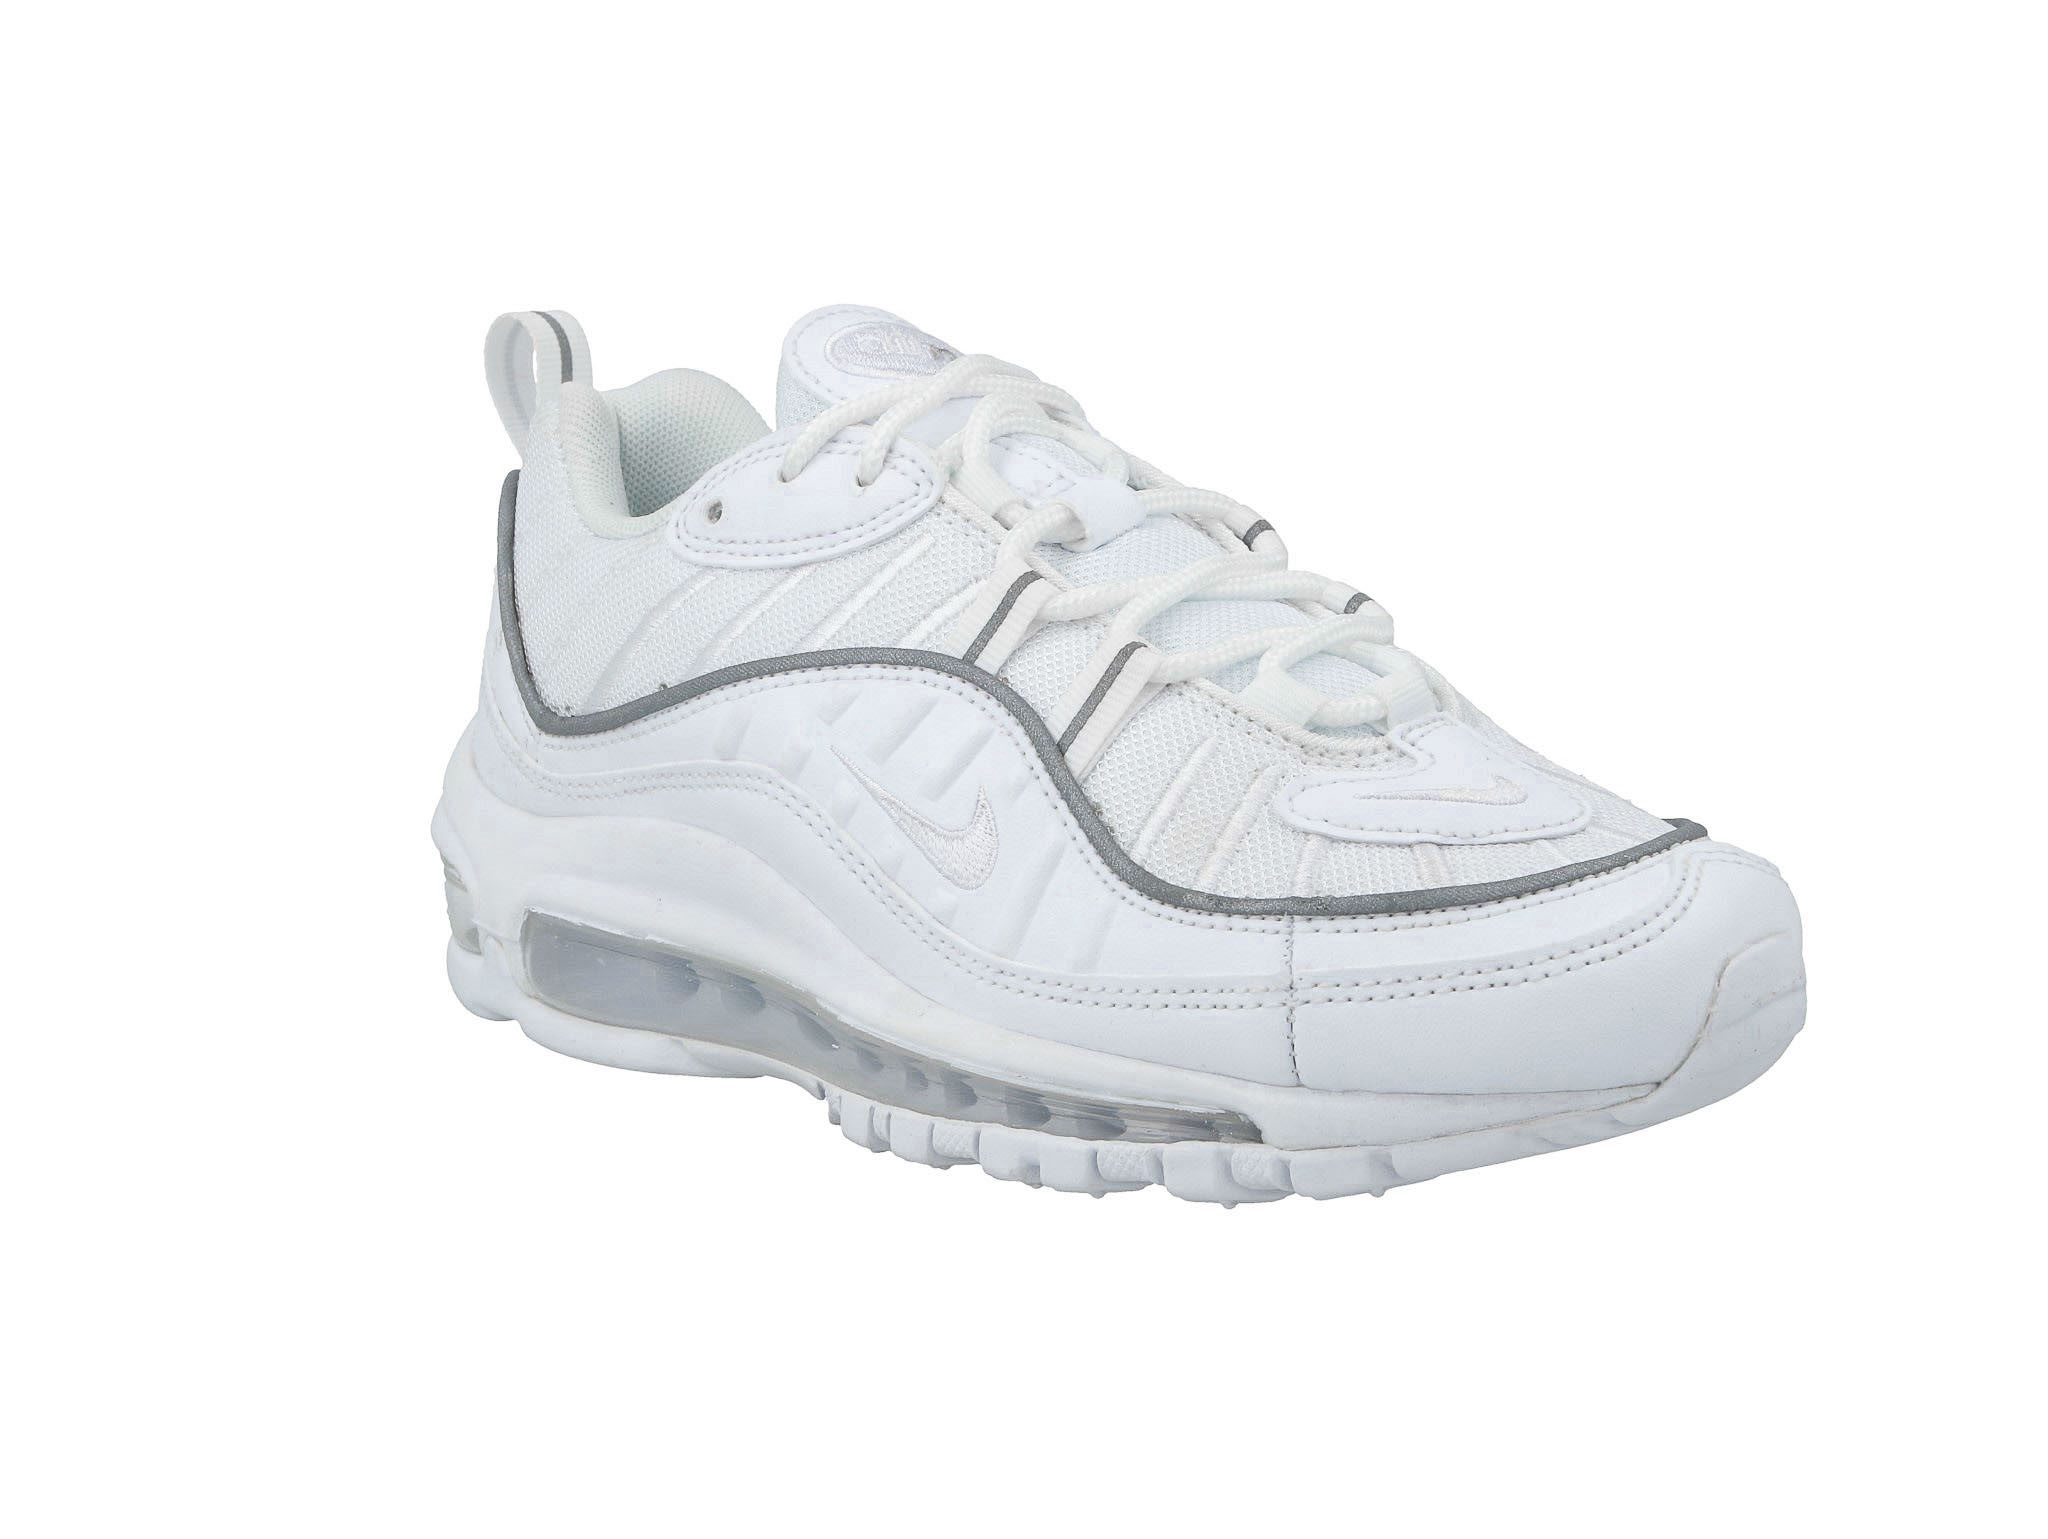 Sneakers buty damskie Nike Air Max 98 whitewhite white (AH6799 114)